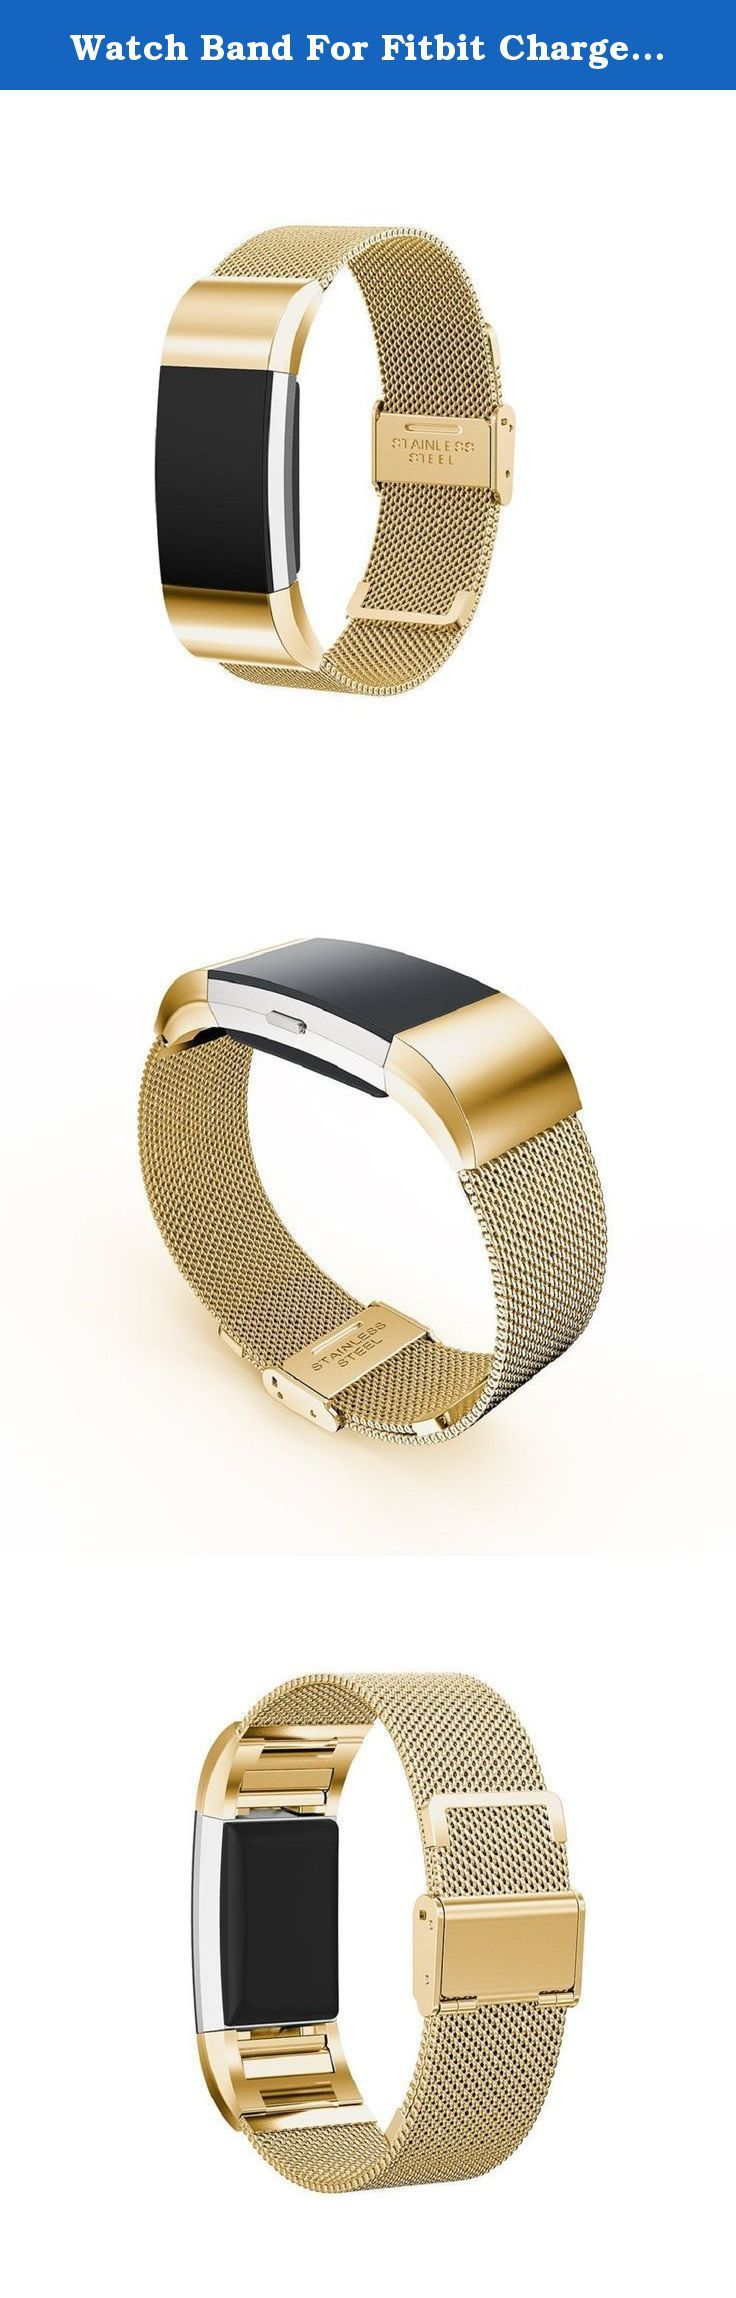 Watch Band For Fitbit Charge 2 , Krisstore Milanese Magnetic Loop Stainless Steel Bracelet Band For Fitbit Charge 2 (Gold). Product Description This Fitbit Charge 2 accessories - Classic replacement band is beautiful, casual and comfortable 100% brand new, Colorful and Personalized, looks very nice Professional and Friendly Customer Support Any problem or question, pls feel free to contact us at the very first time, we will resolve for you asap. We are at your service always Packaging...